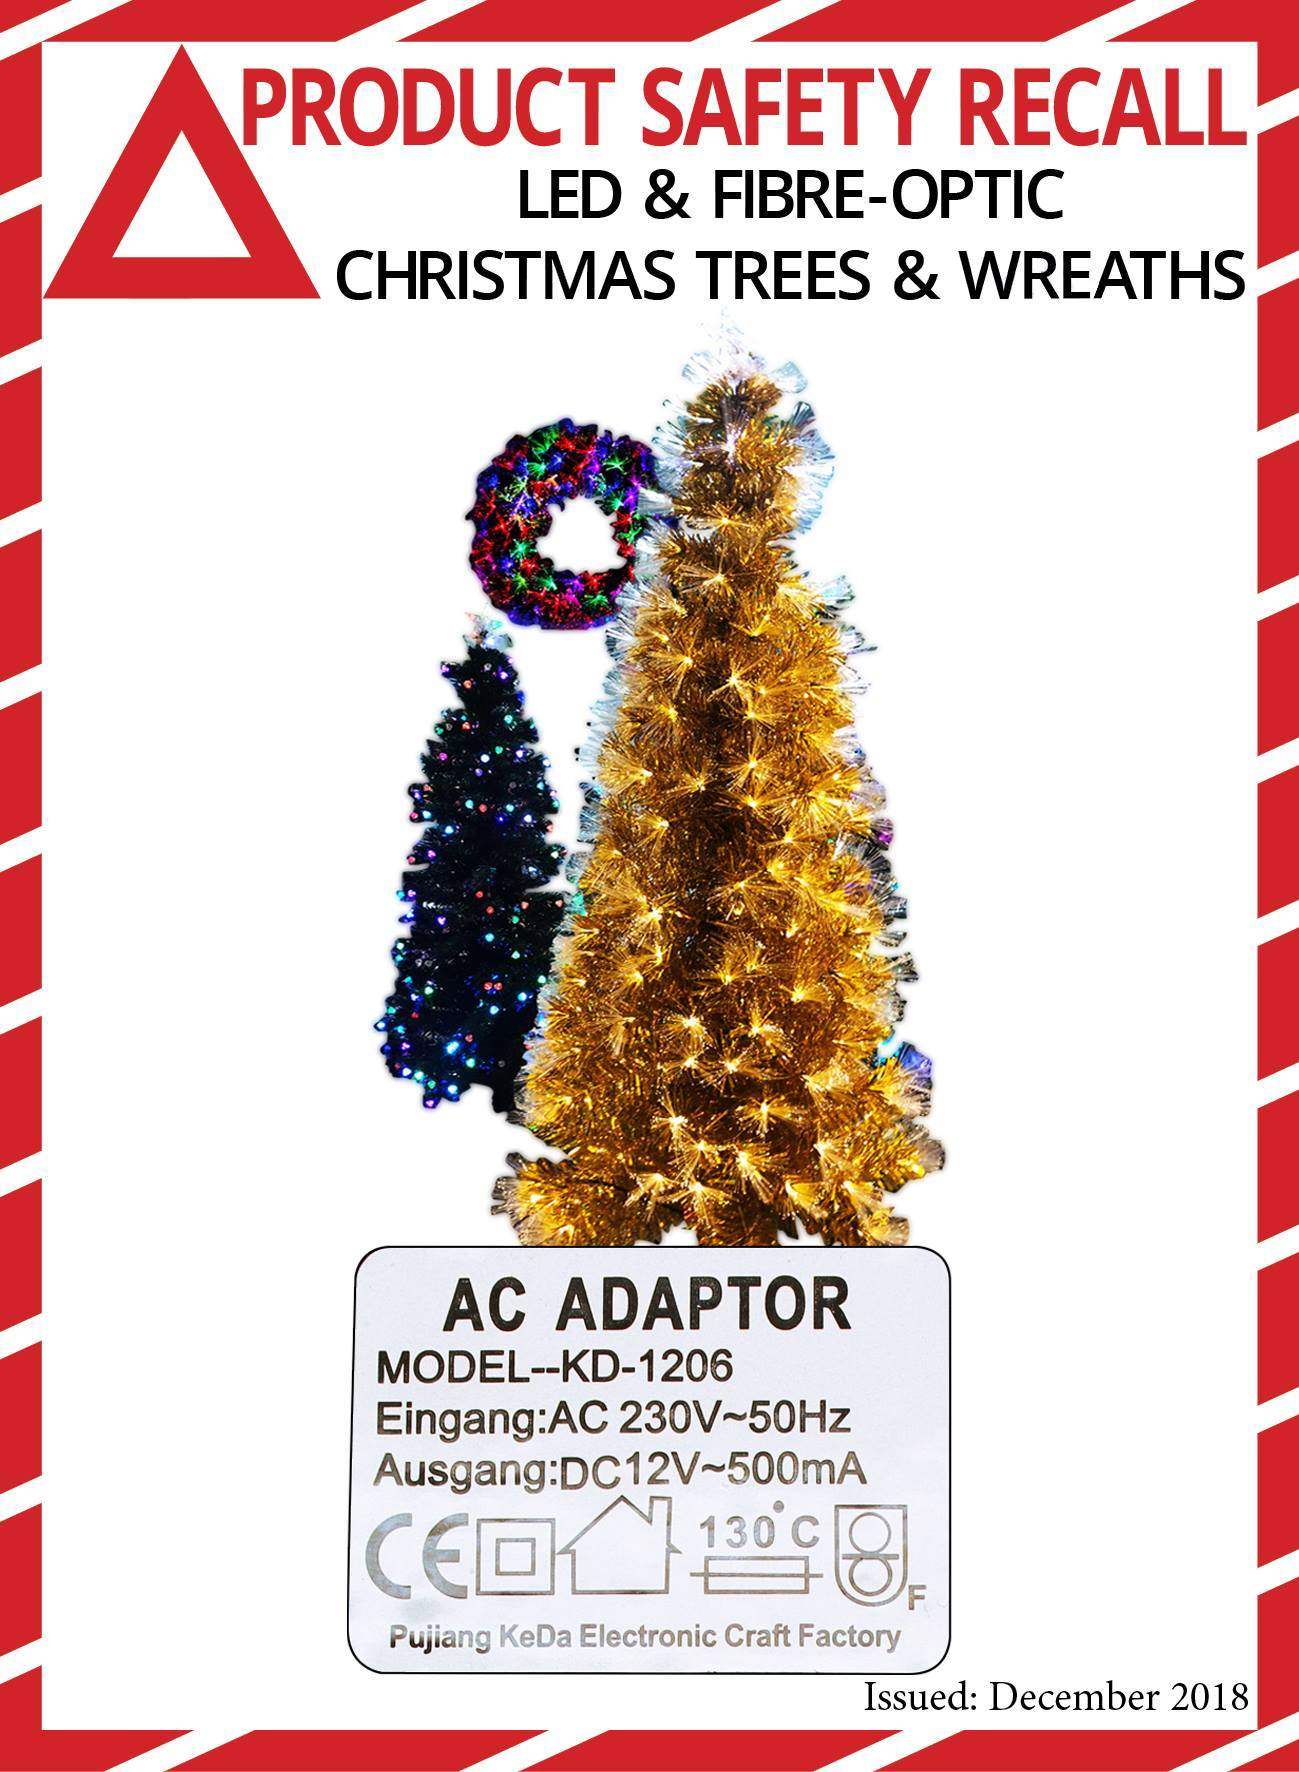 Acquisitions stores recall LED and fibre-optic Christmas Trees and wreaths